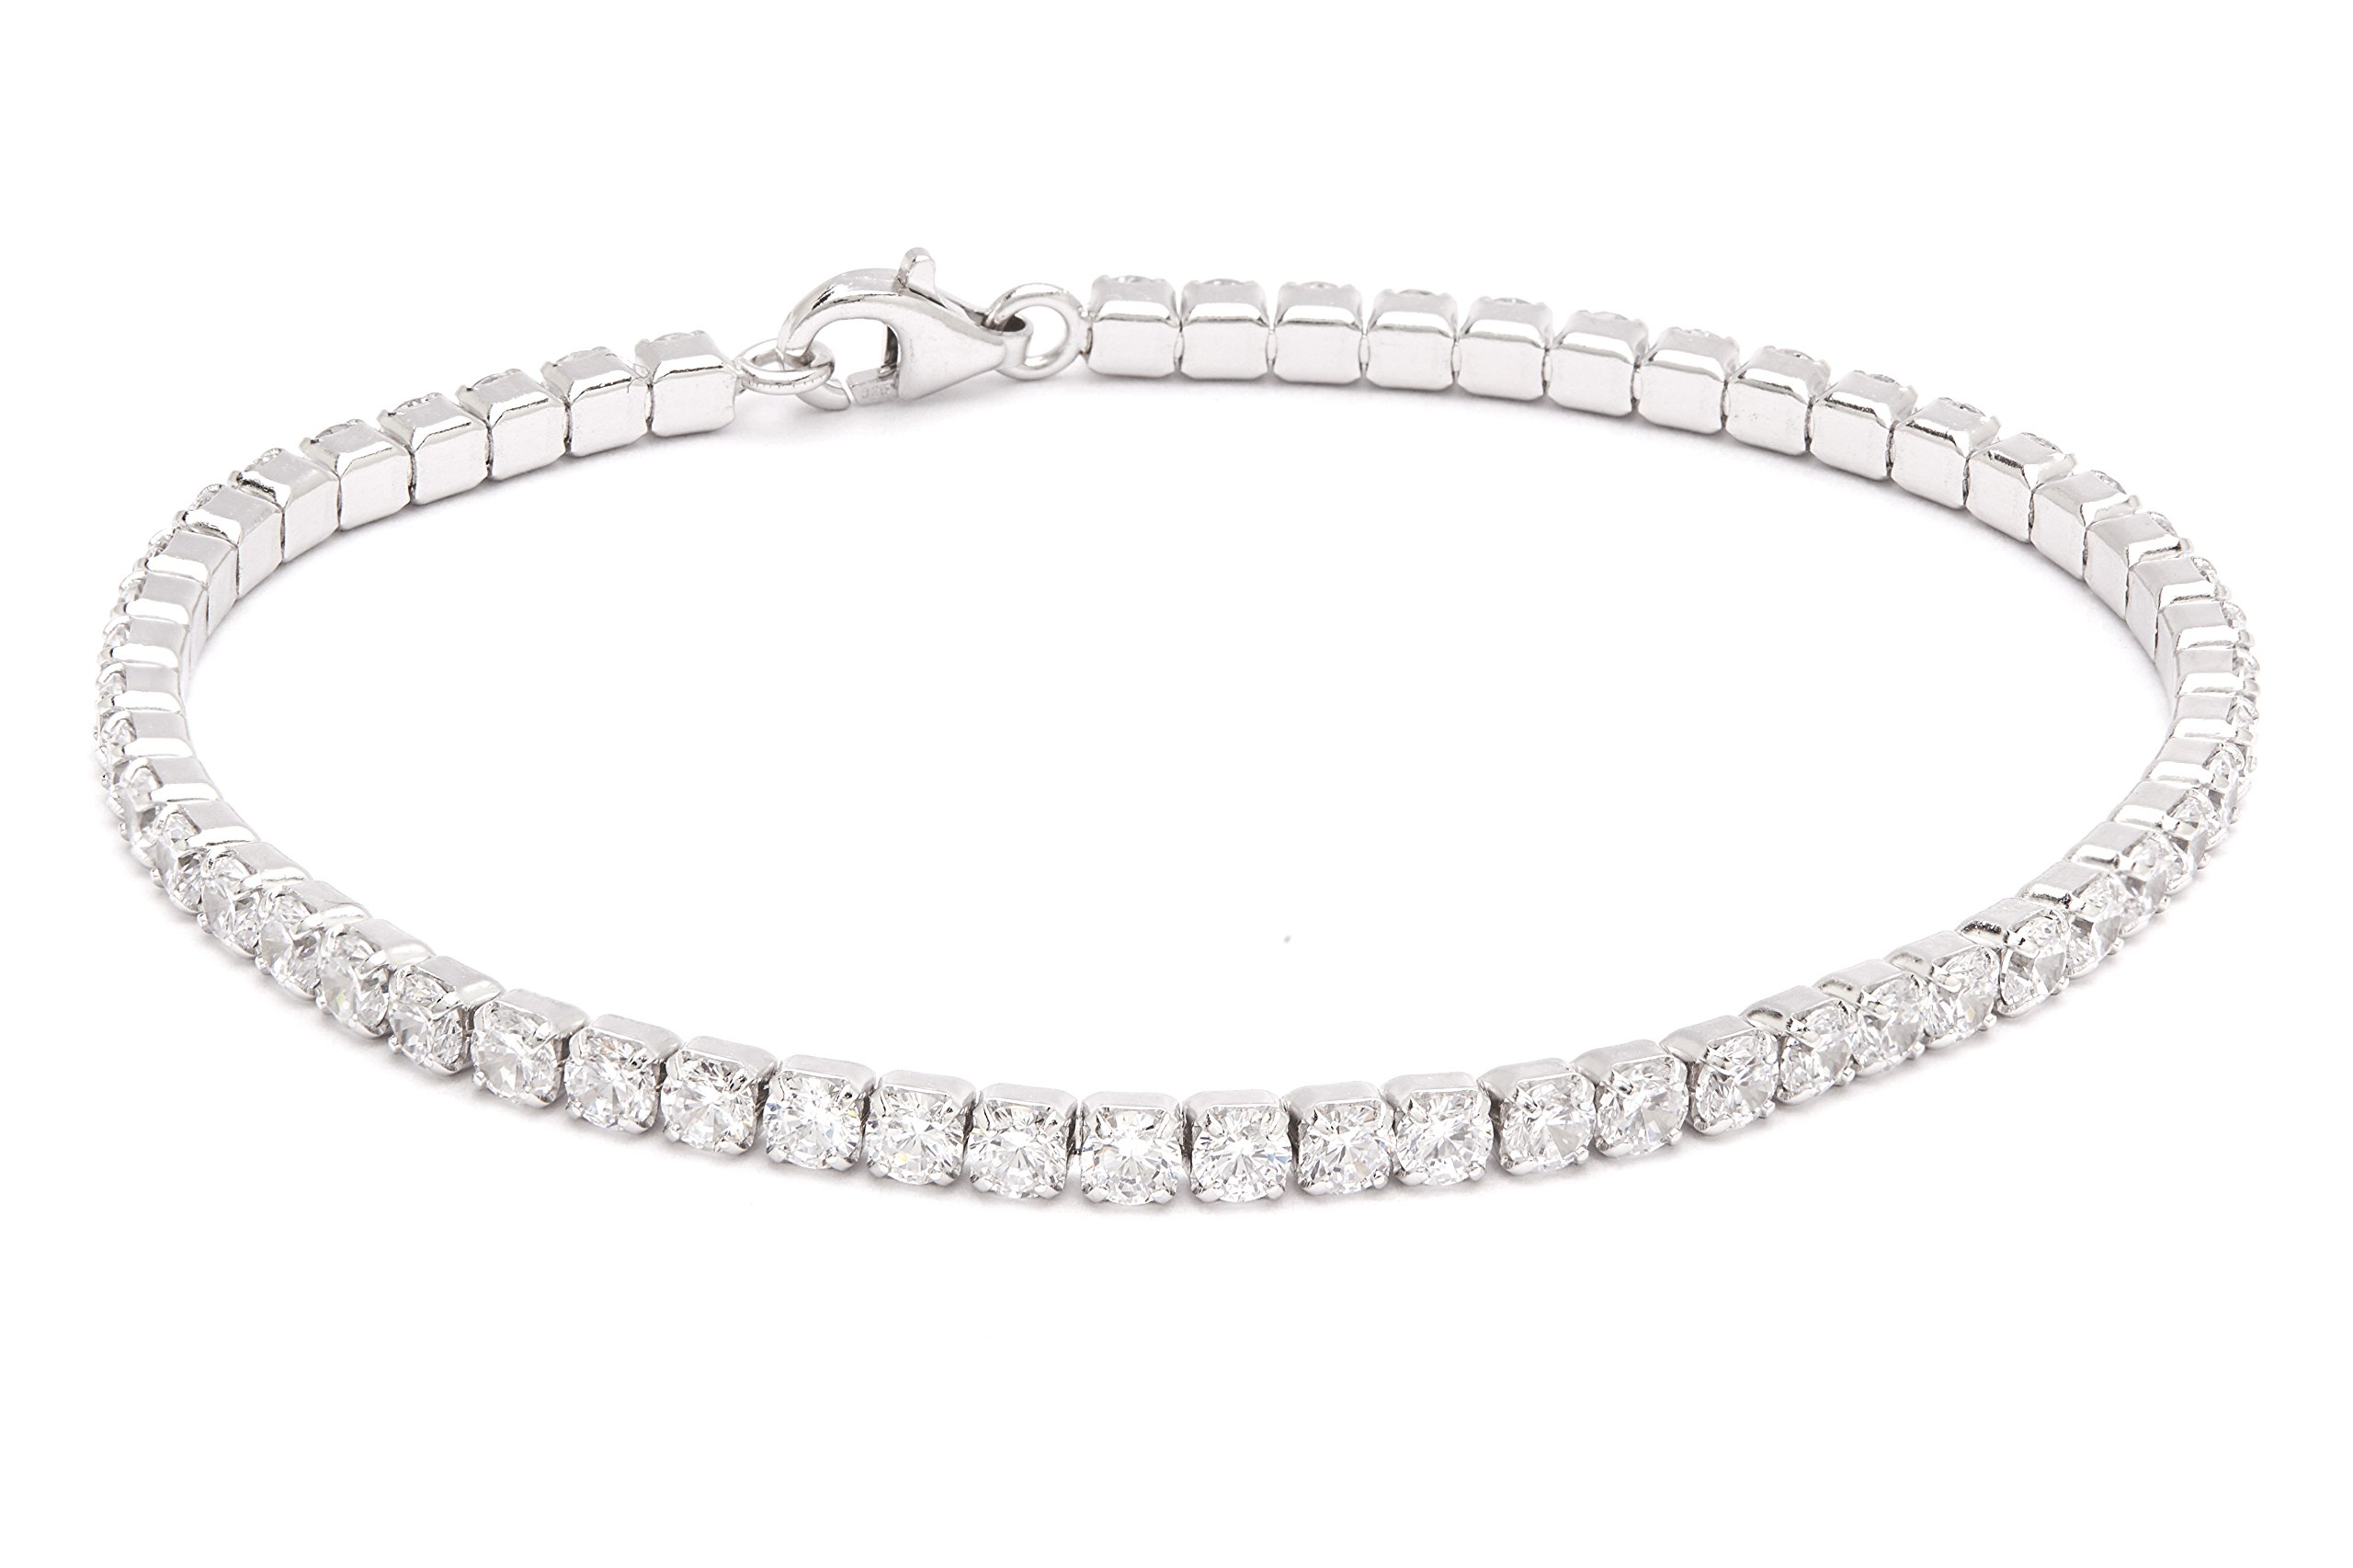 Quality Jewels Sterling Silver 2.5MM Round Cubic White Cubic Zirconia Tennis Bracelet In Rhodium & Gold Plated, 7.5 Inches (White)